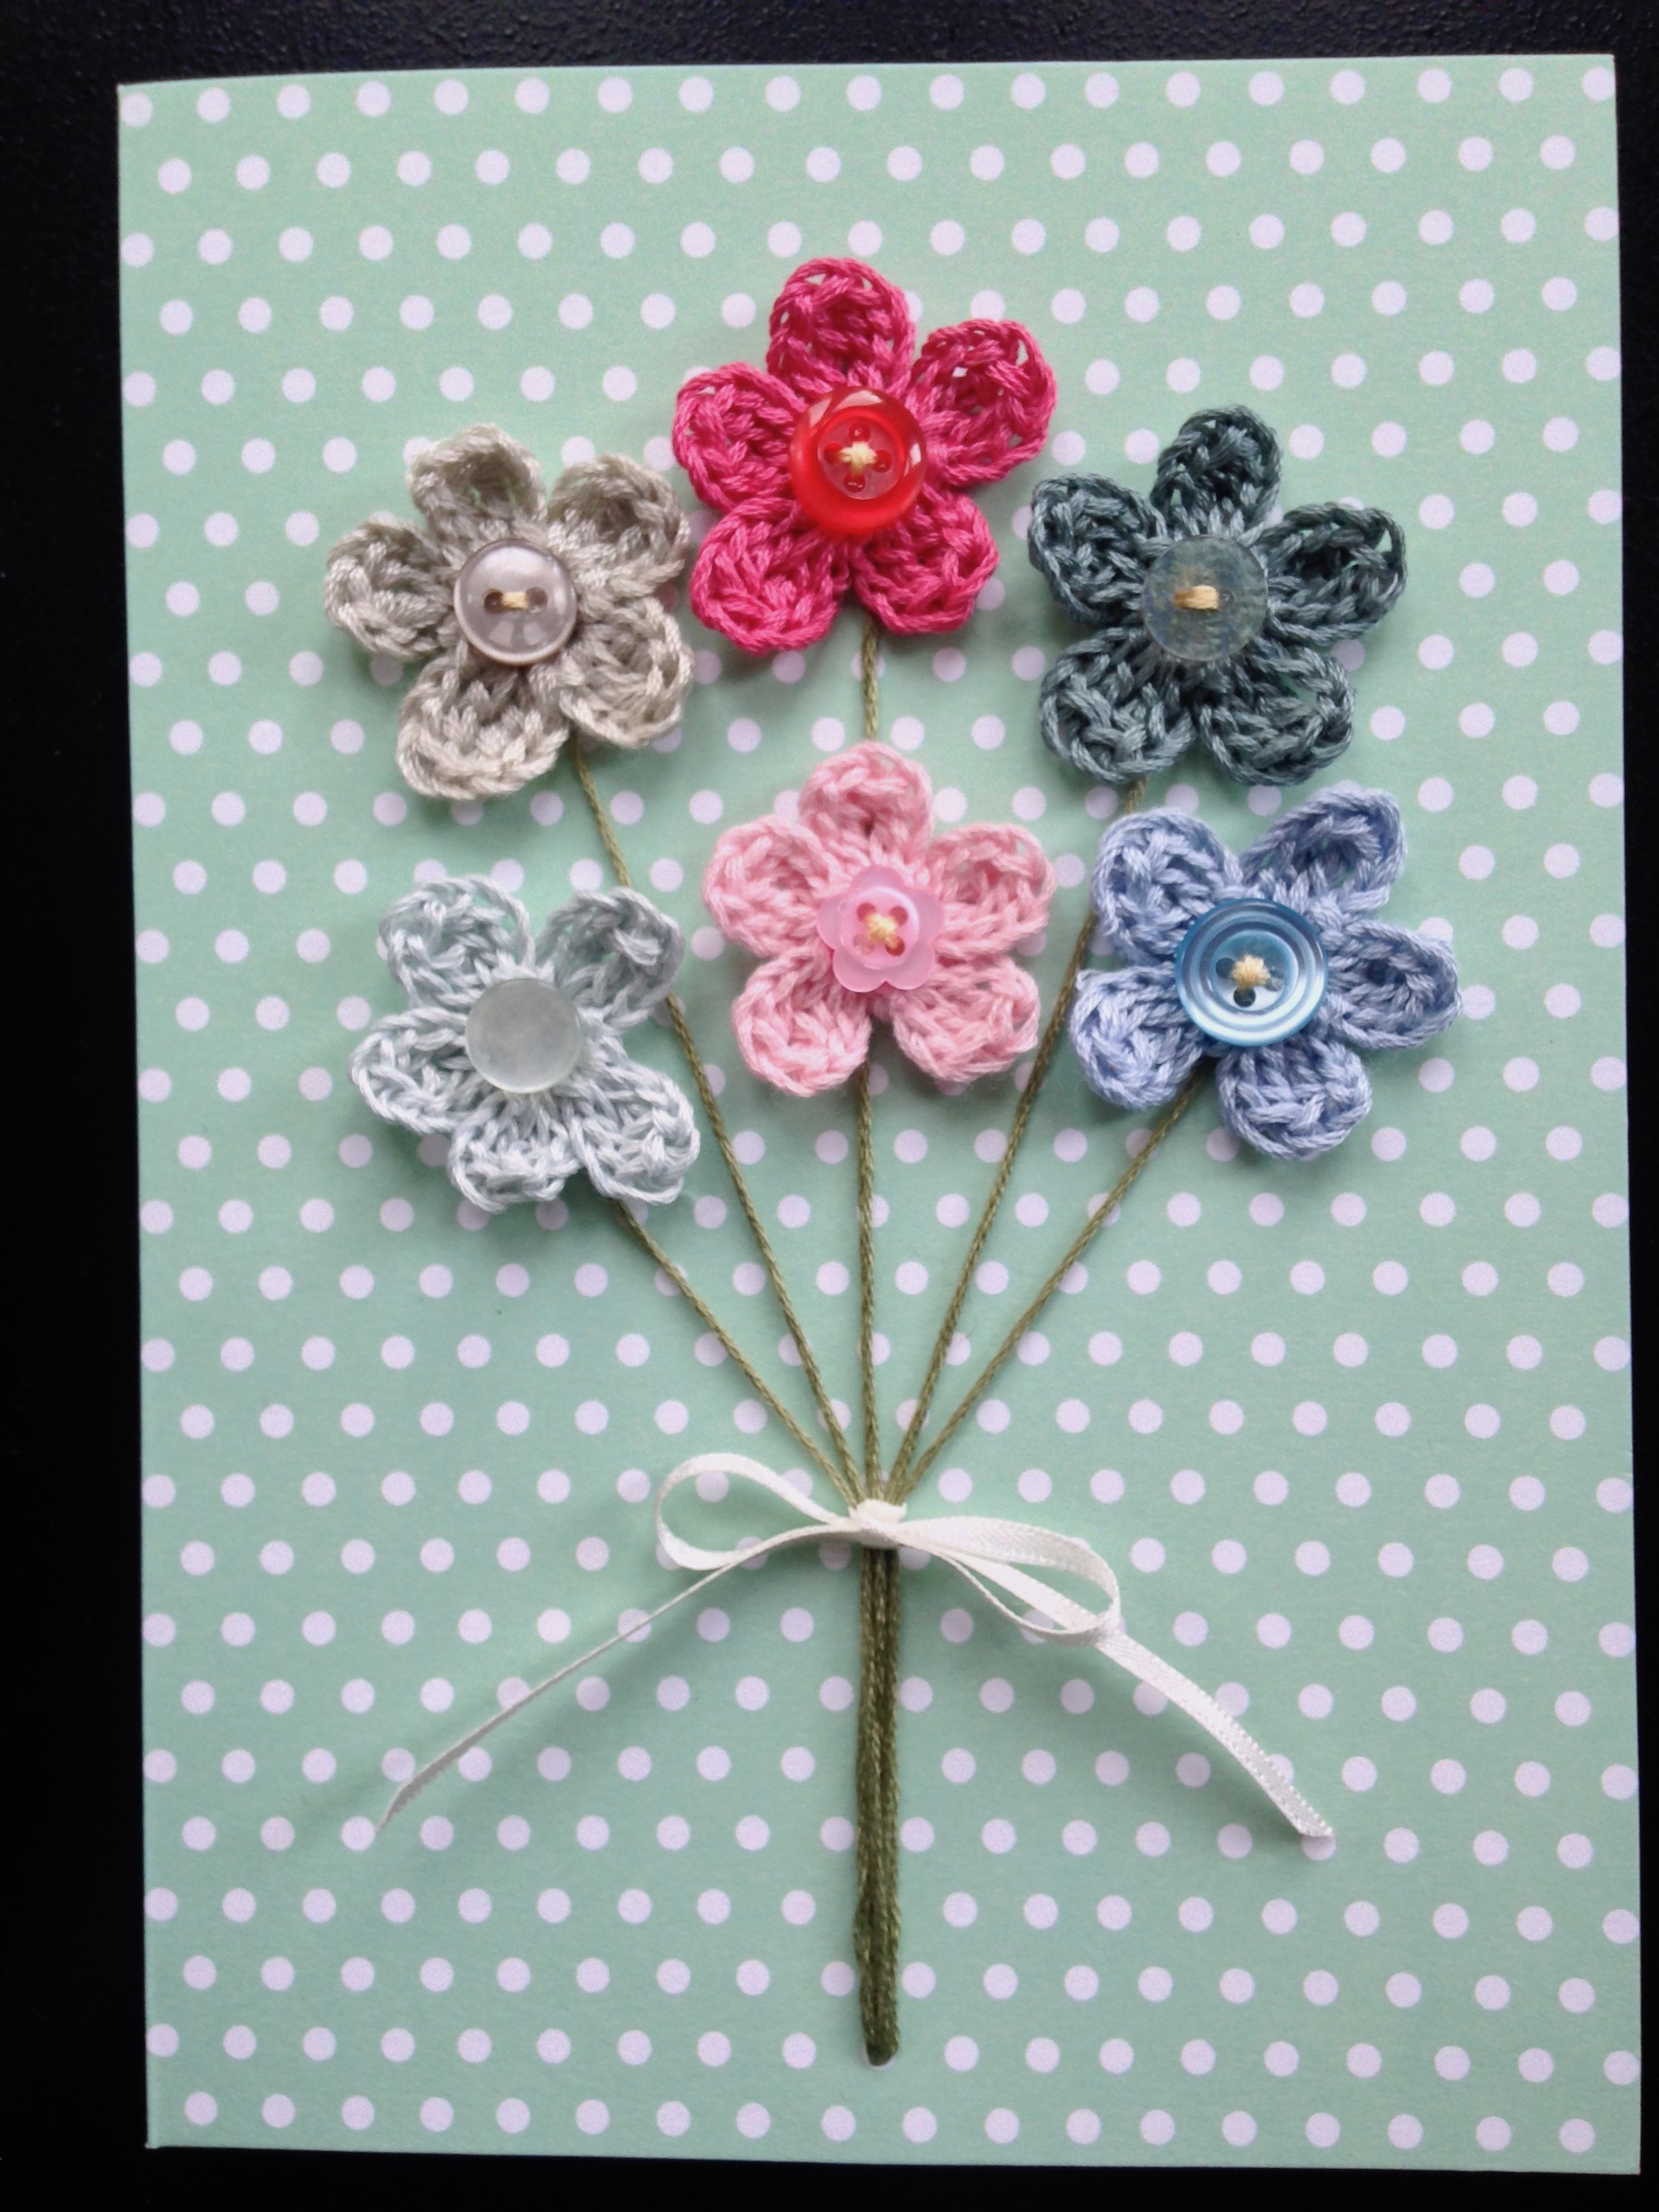 A posy of crocheted flowers.